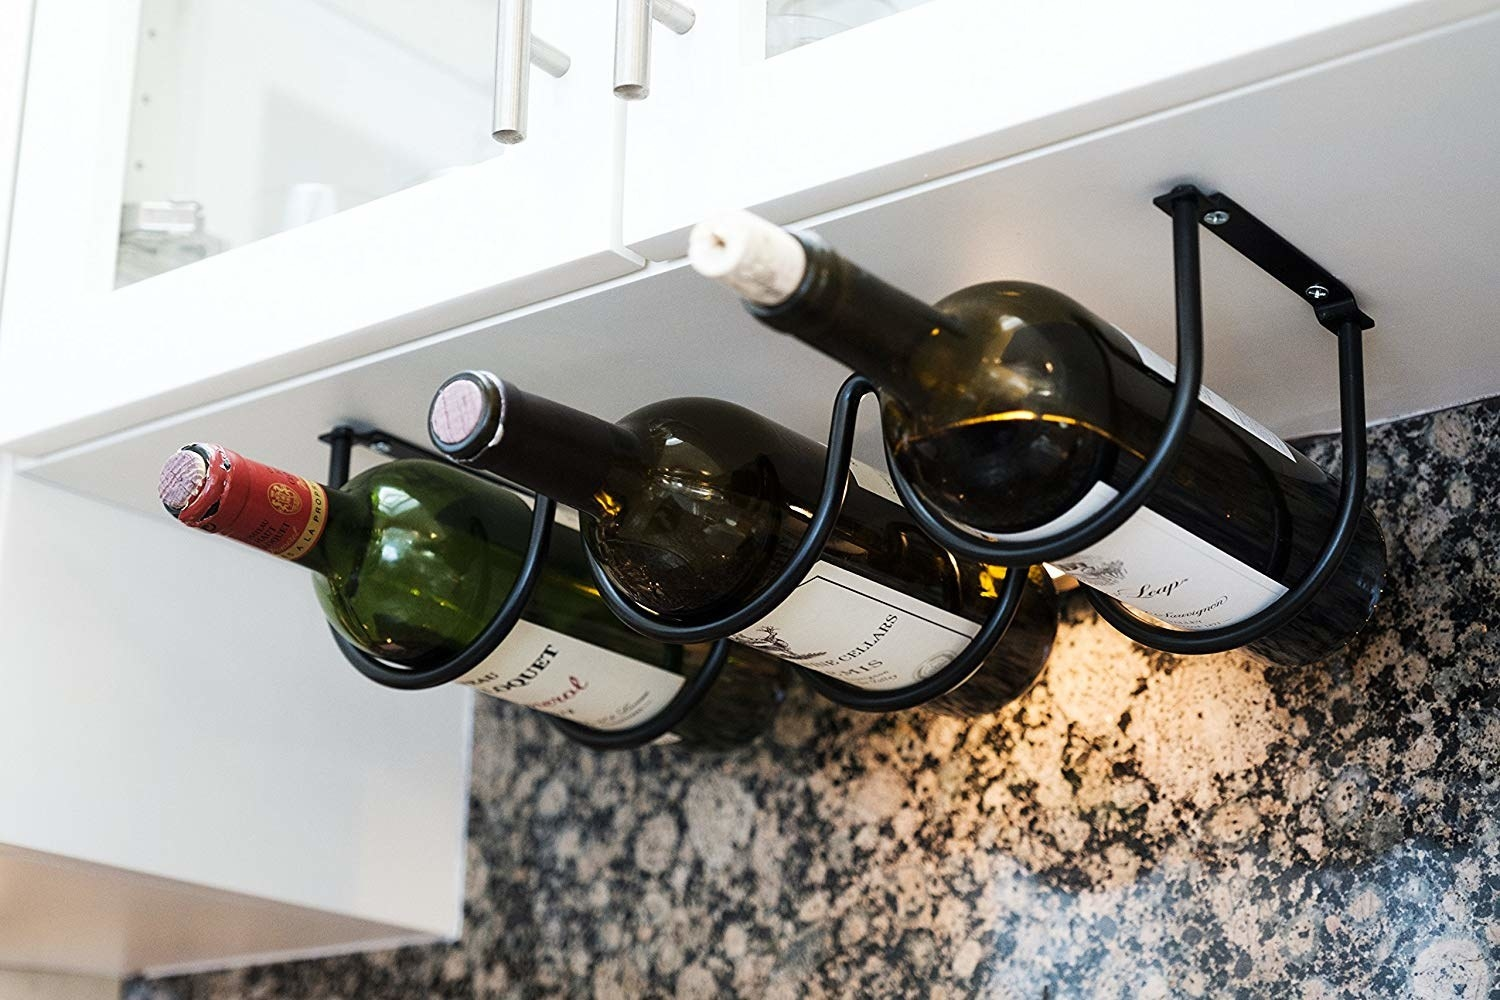 A three-bottle wine rack installed on the underside of a kitchen cabinet